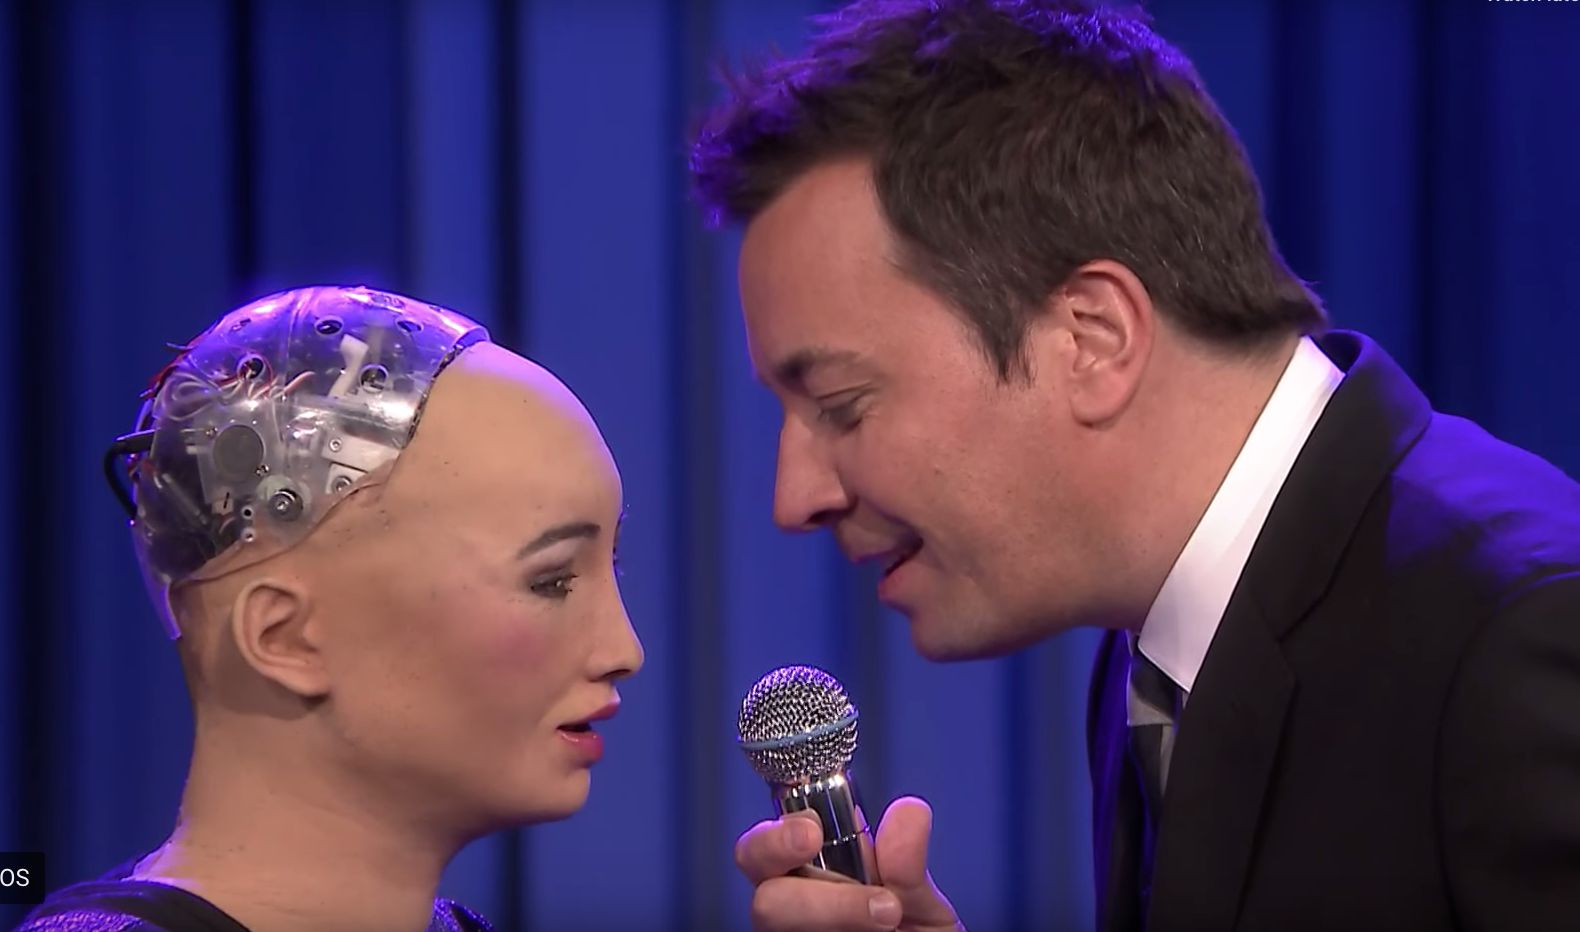 Sophia the Robot and Jimmy Fallon